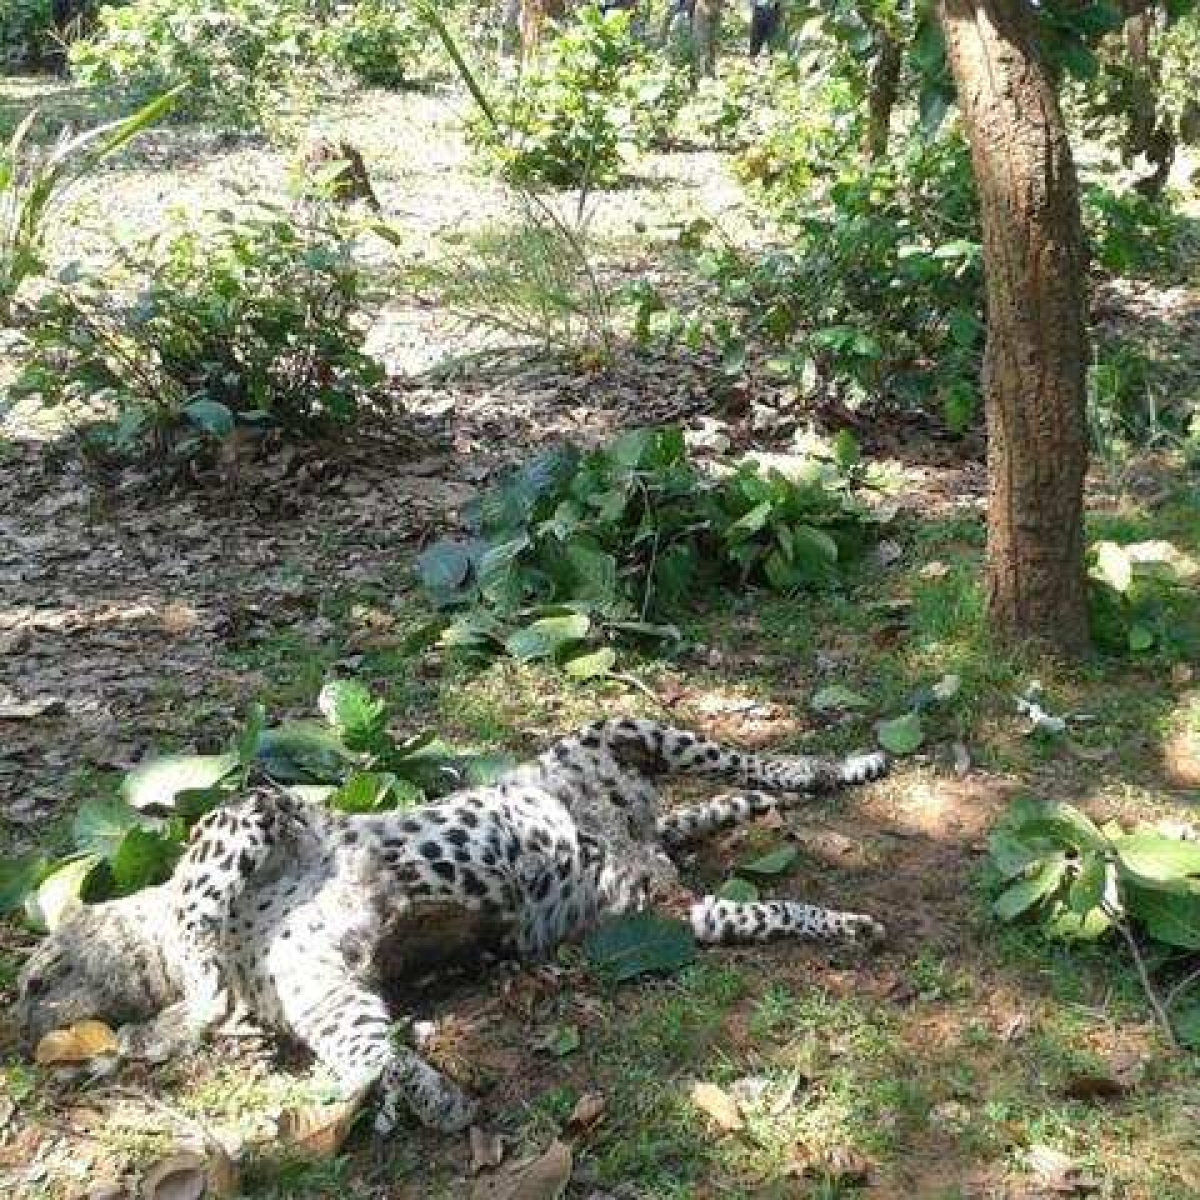 Madhya Pradesh: Leopard dies of electrocution in Umaria forest